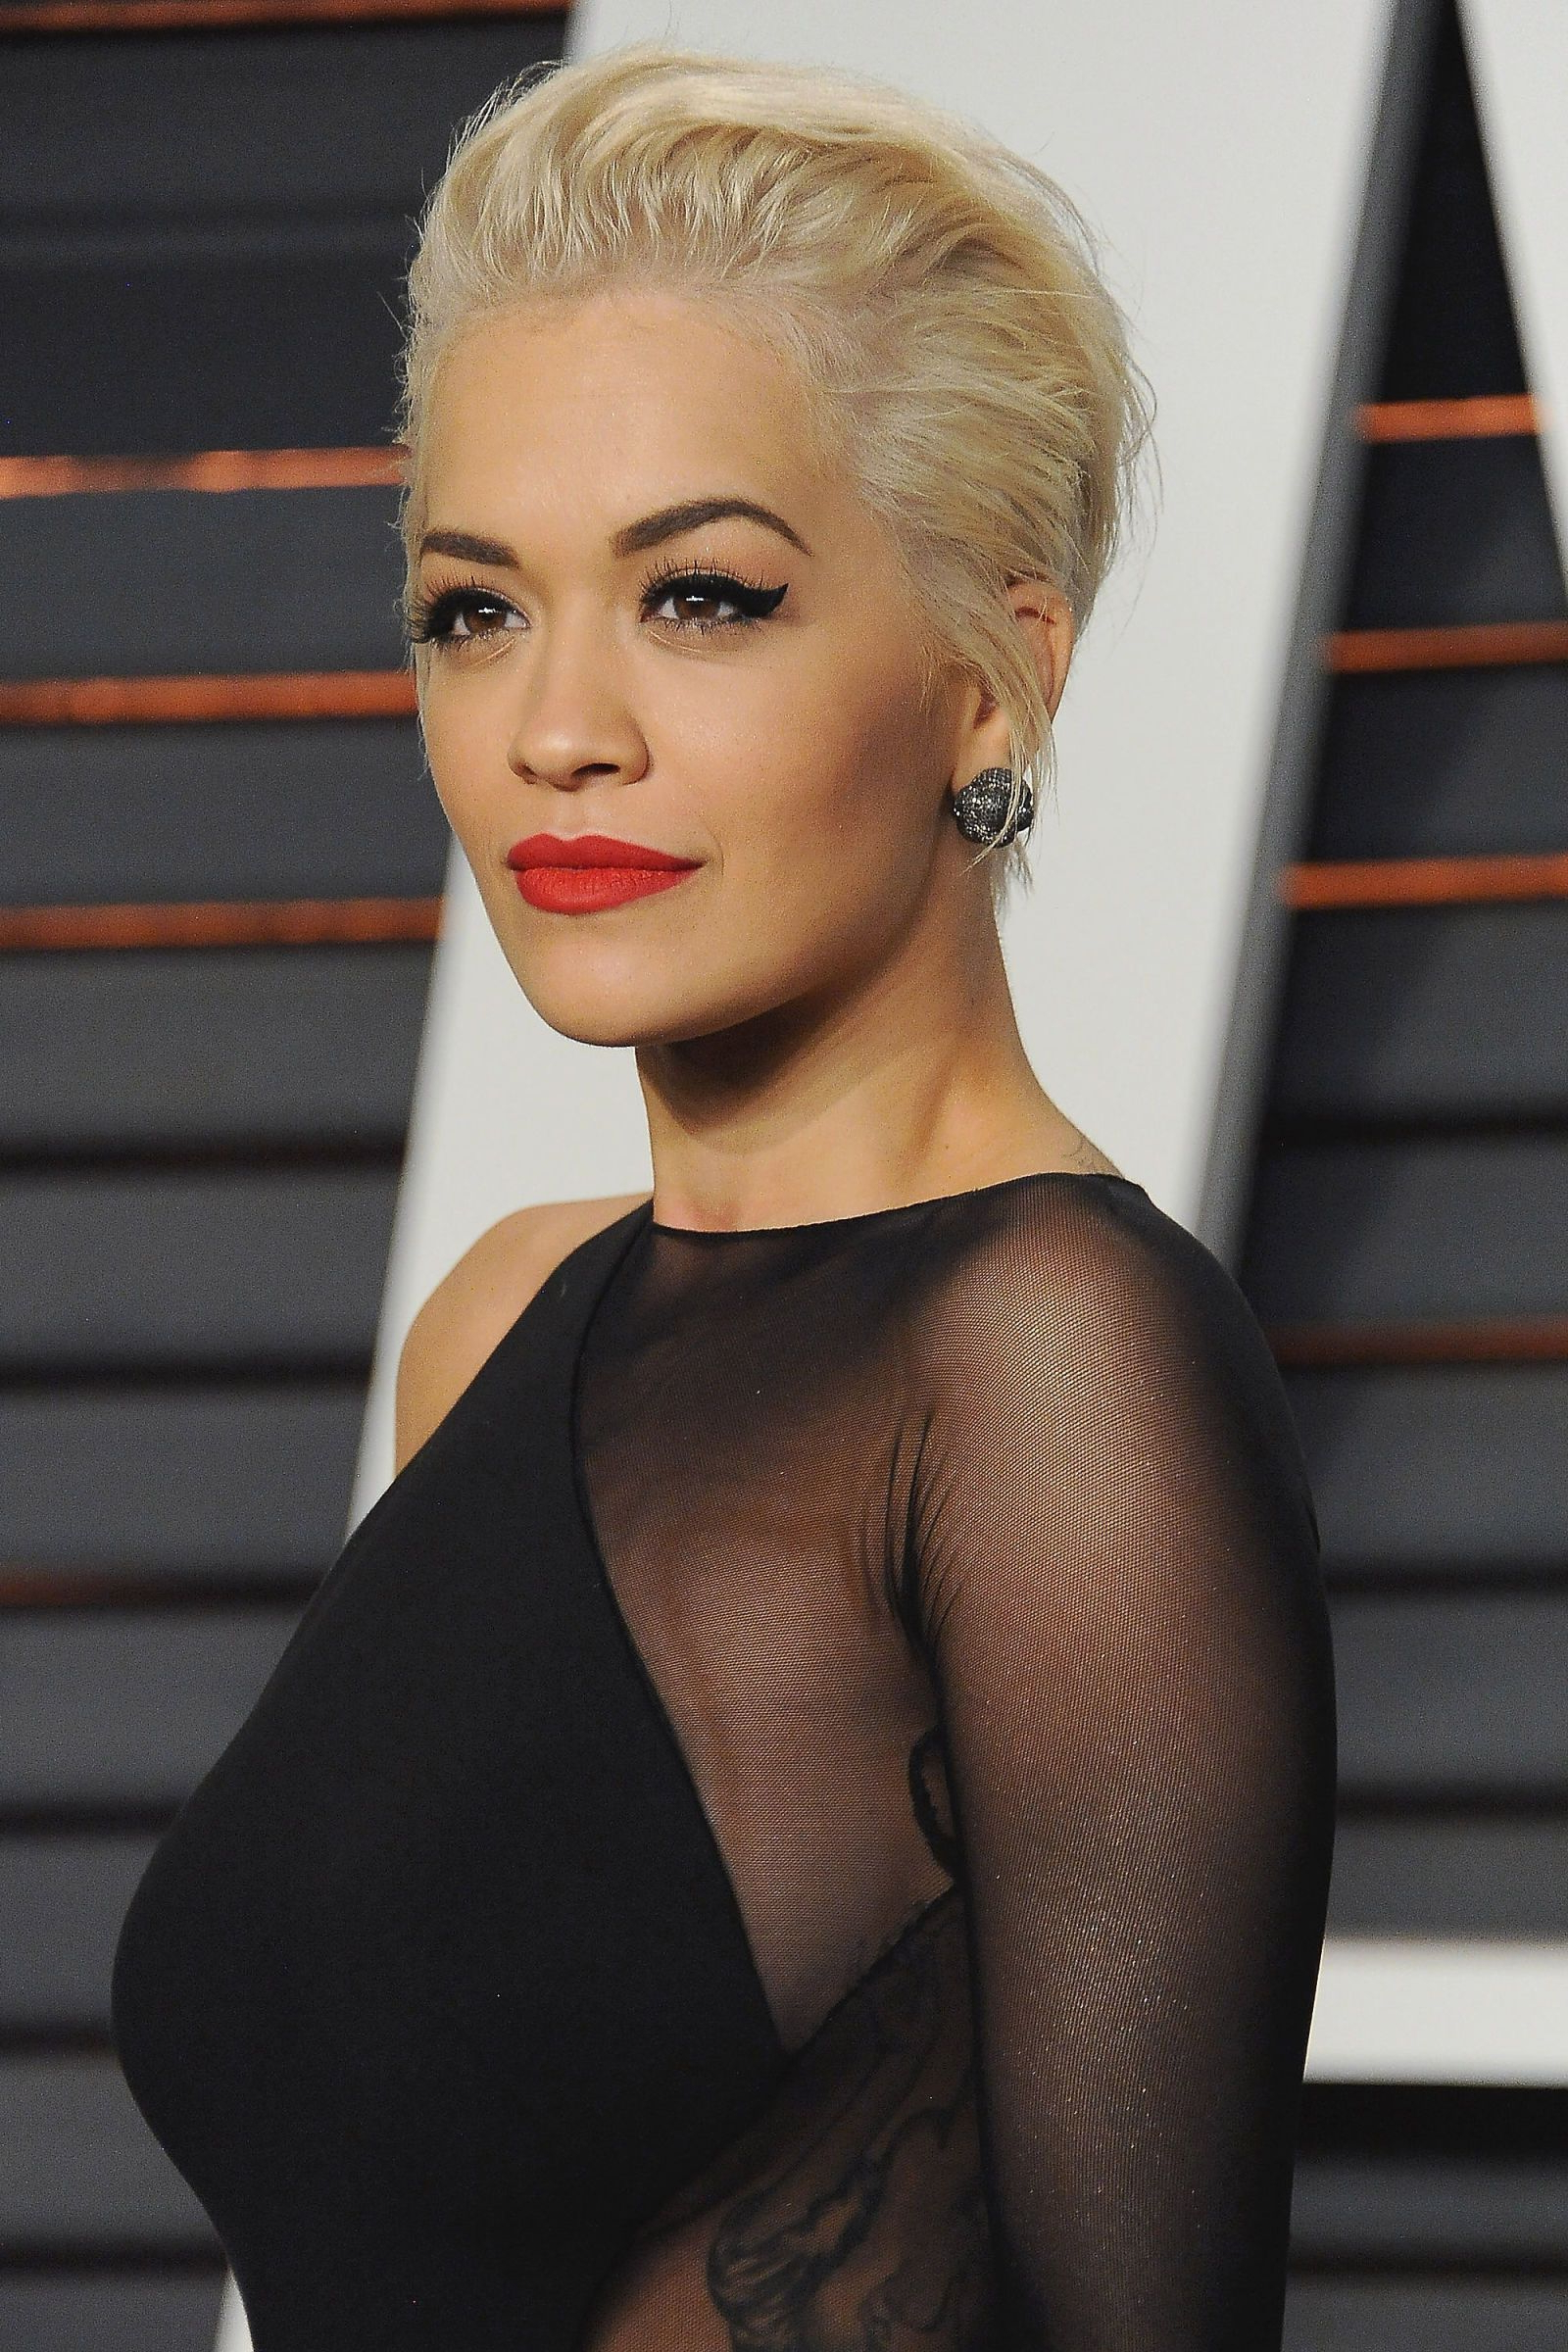 87 Cute Short Hairstyles—And How To Pull Them Off | Food | Pinterest within Rita Ora Short Hairstyles